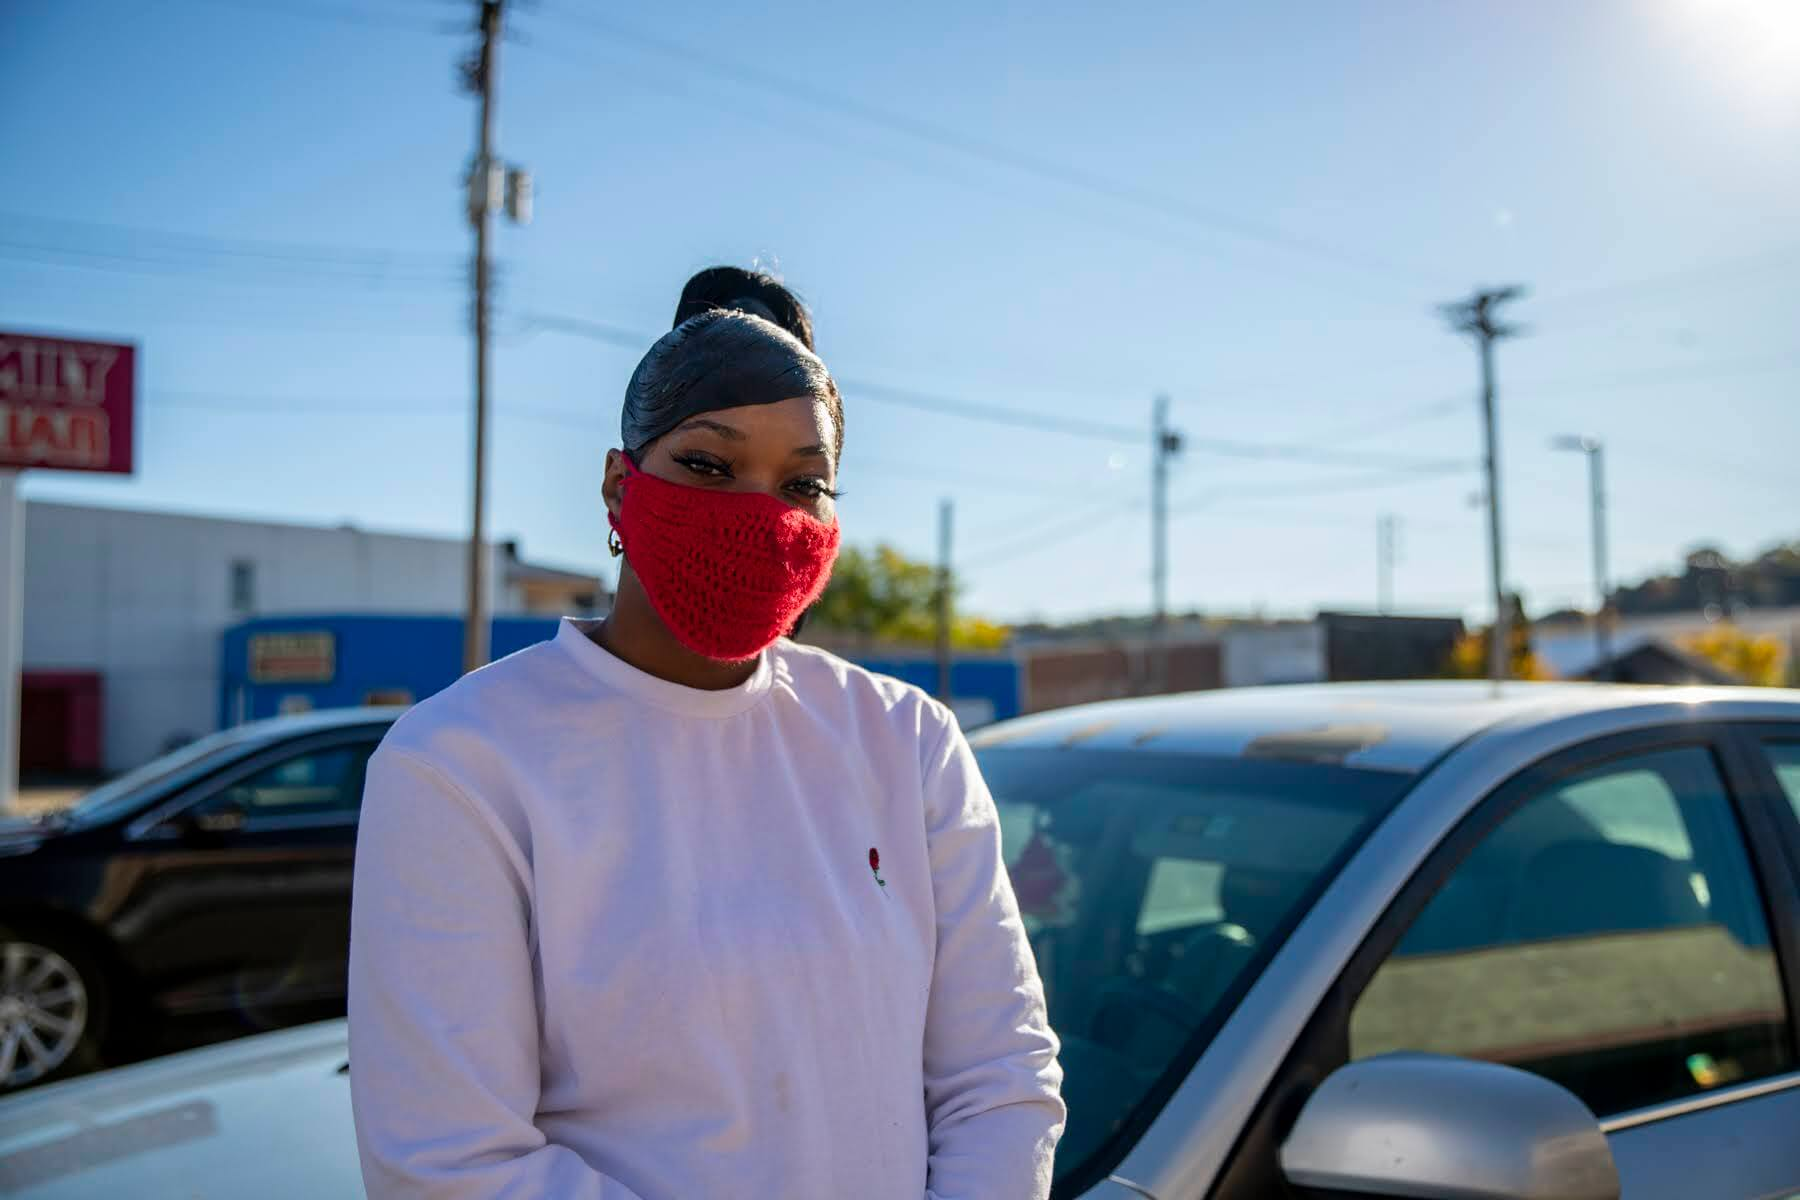 Shadawn Reeves, a Glassport resident, masked standing in front of car.